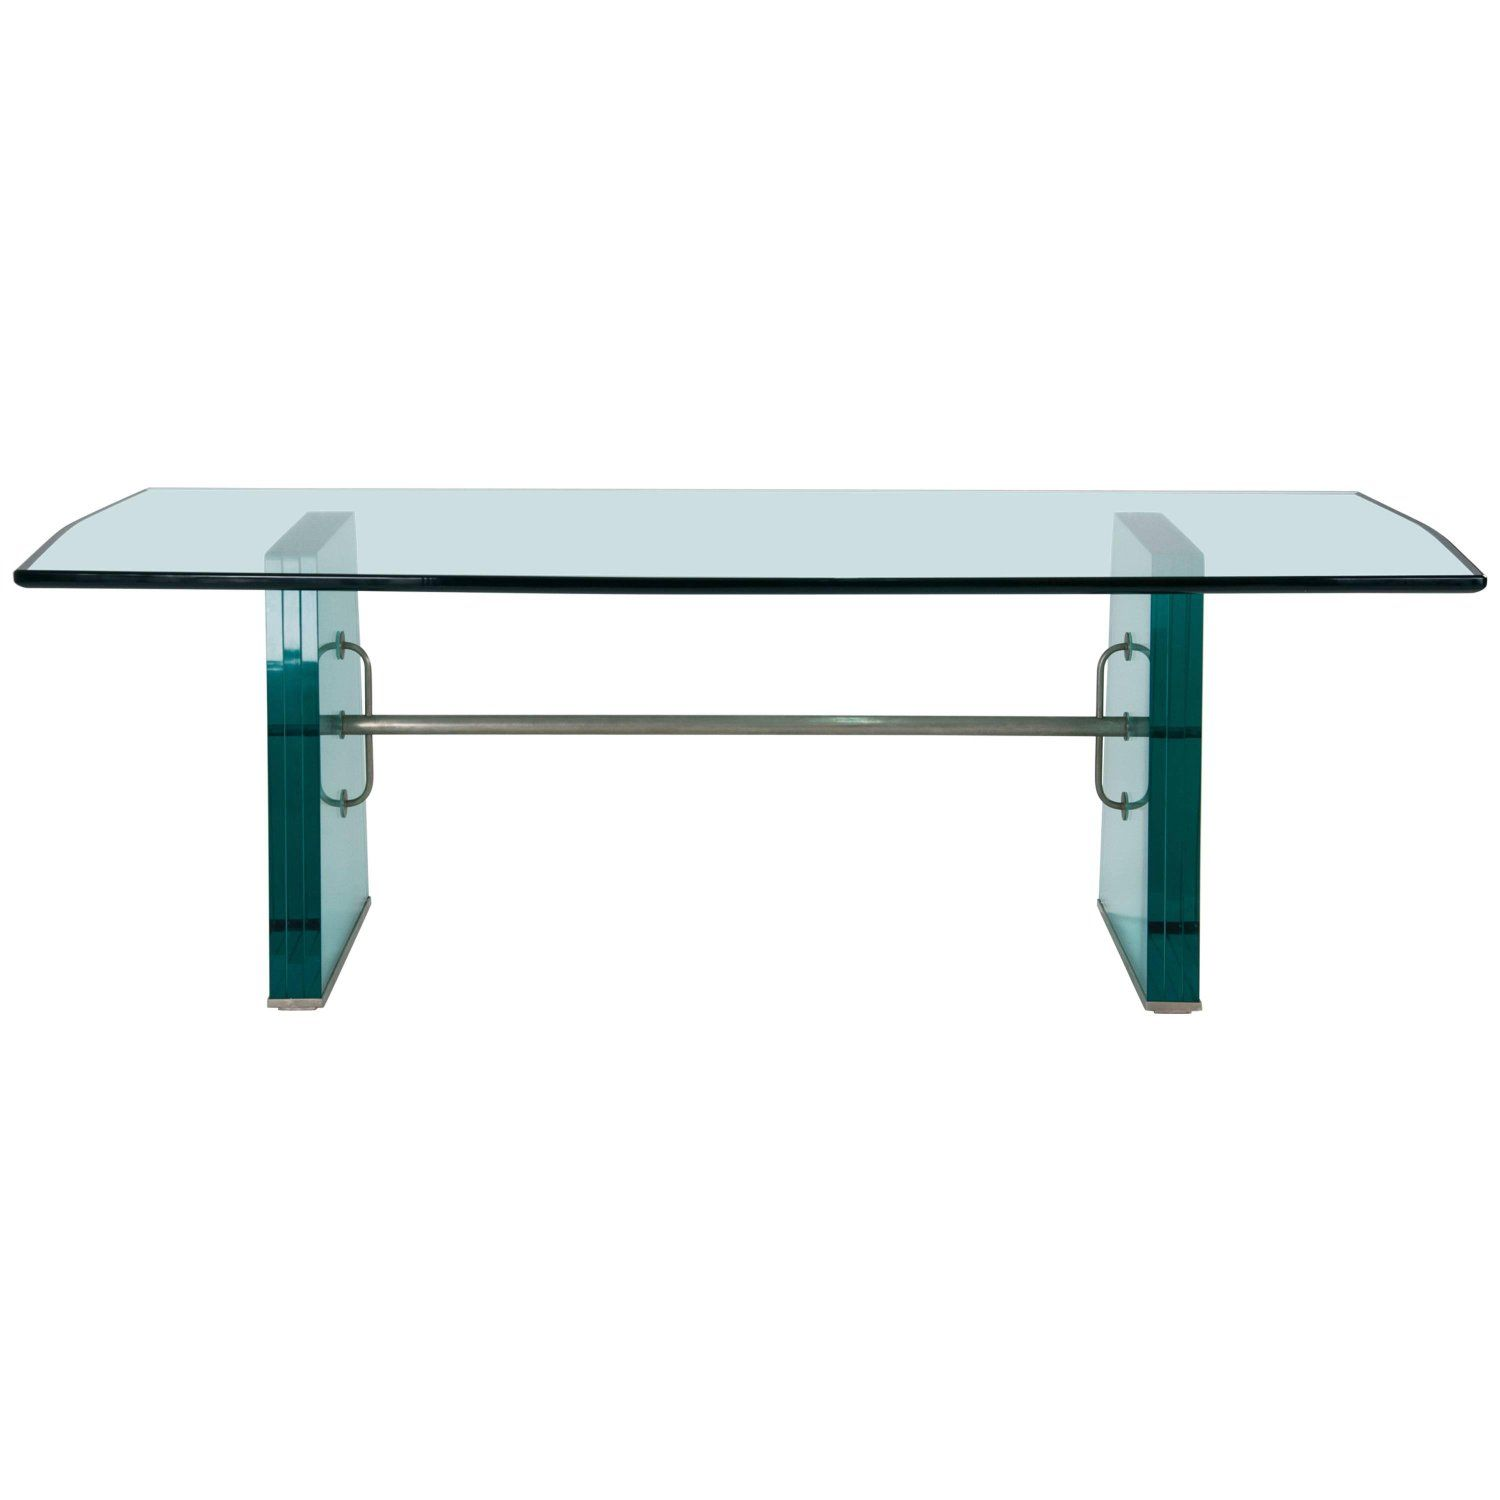 Pietro Chiesa Extraordinary Glass Dining Table For Fontana Arte 1934 Glass Dining Table Dining Table Design Modern Dining Room Tables [ 1500 x 1500 Pixel ]